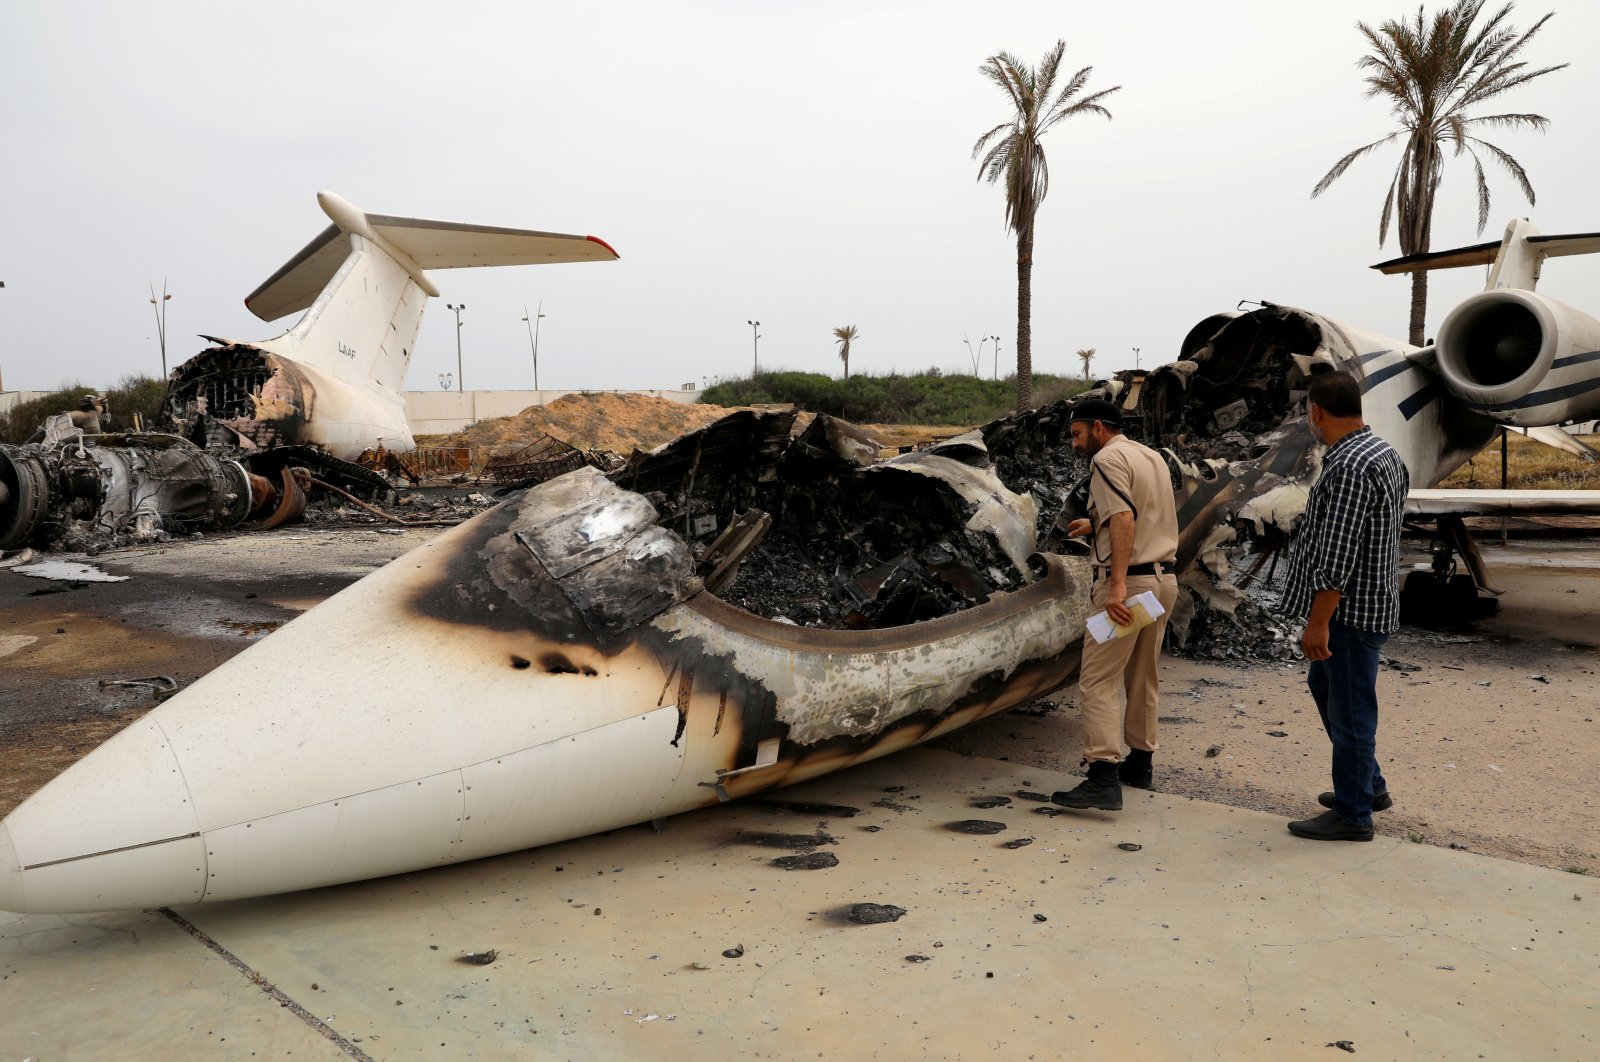 A policeman and a man inspect a passenger plane damaged by shelling at Mitiga airport, Tripoli, Libya May 10, 2020. (Reuters File Photo)